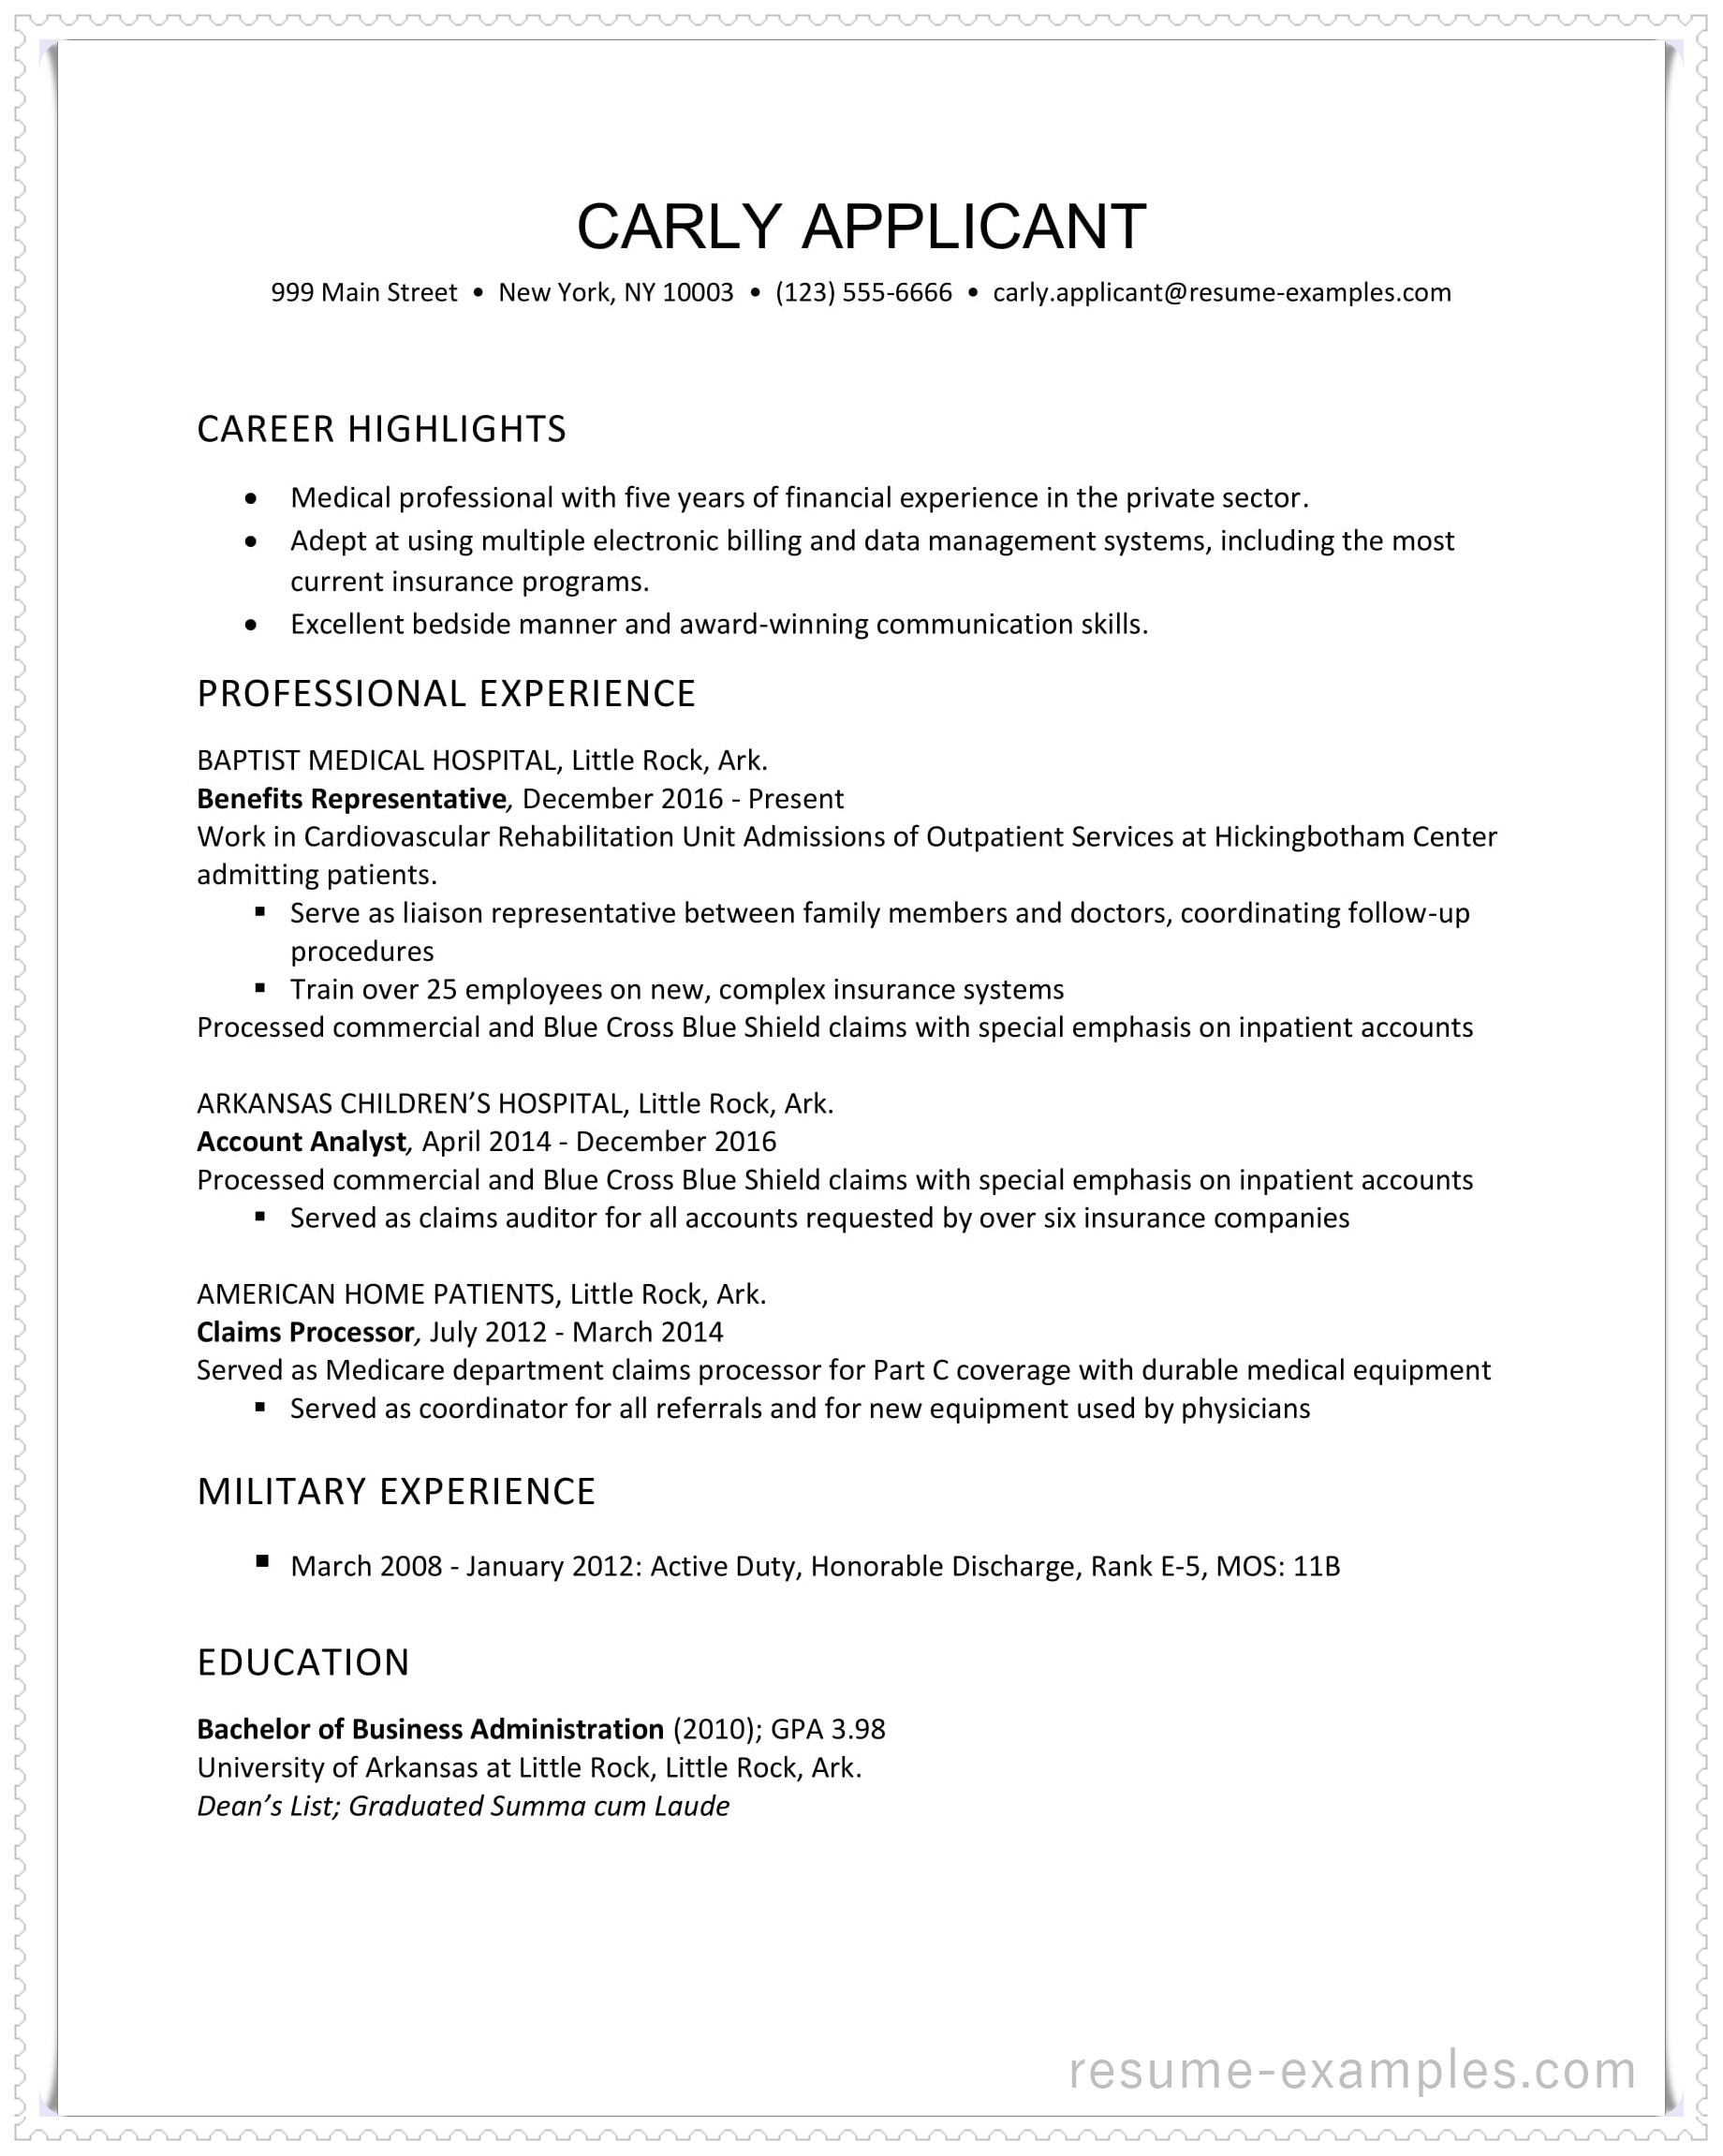 resume examples highlights sample health insurance industry example in ms word format job Resume Resume Highlights Sample